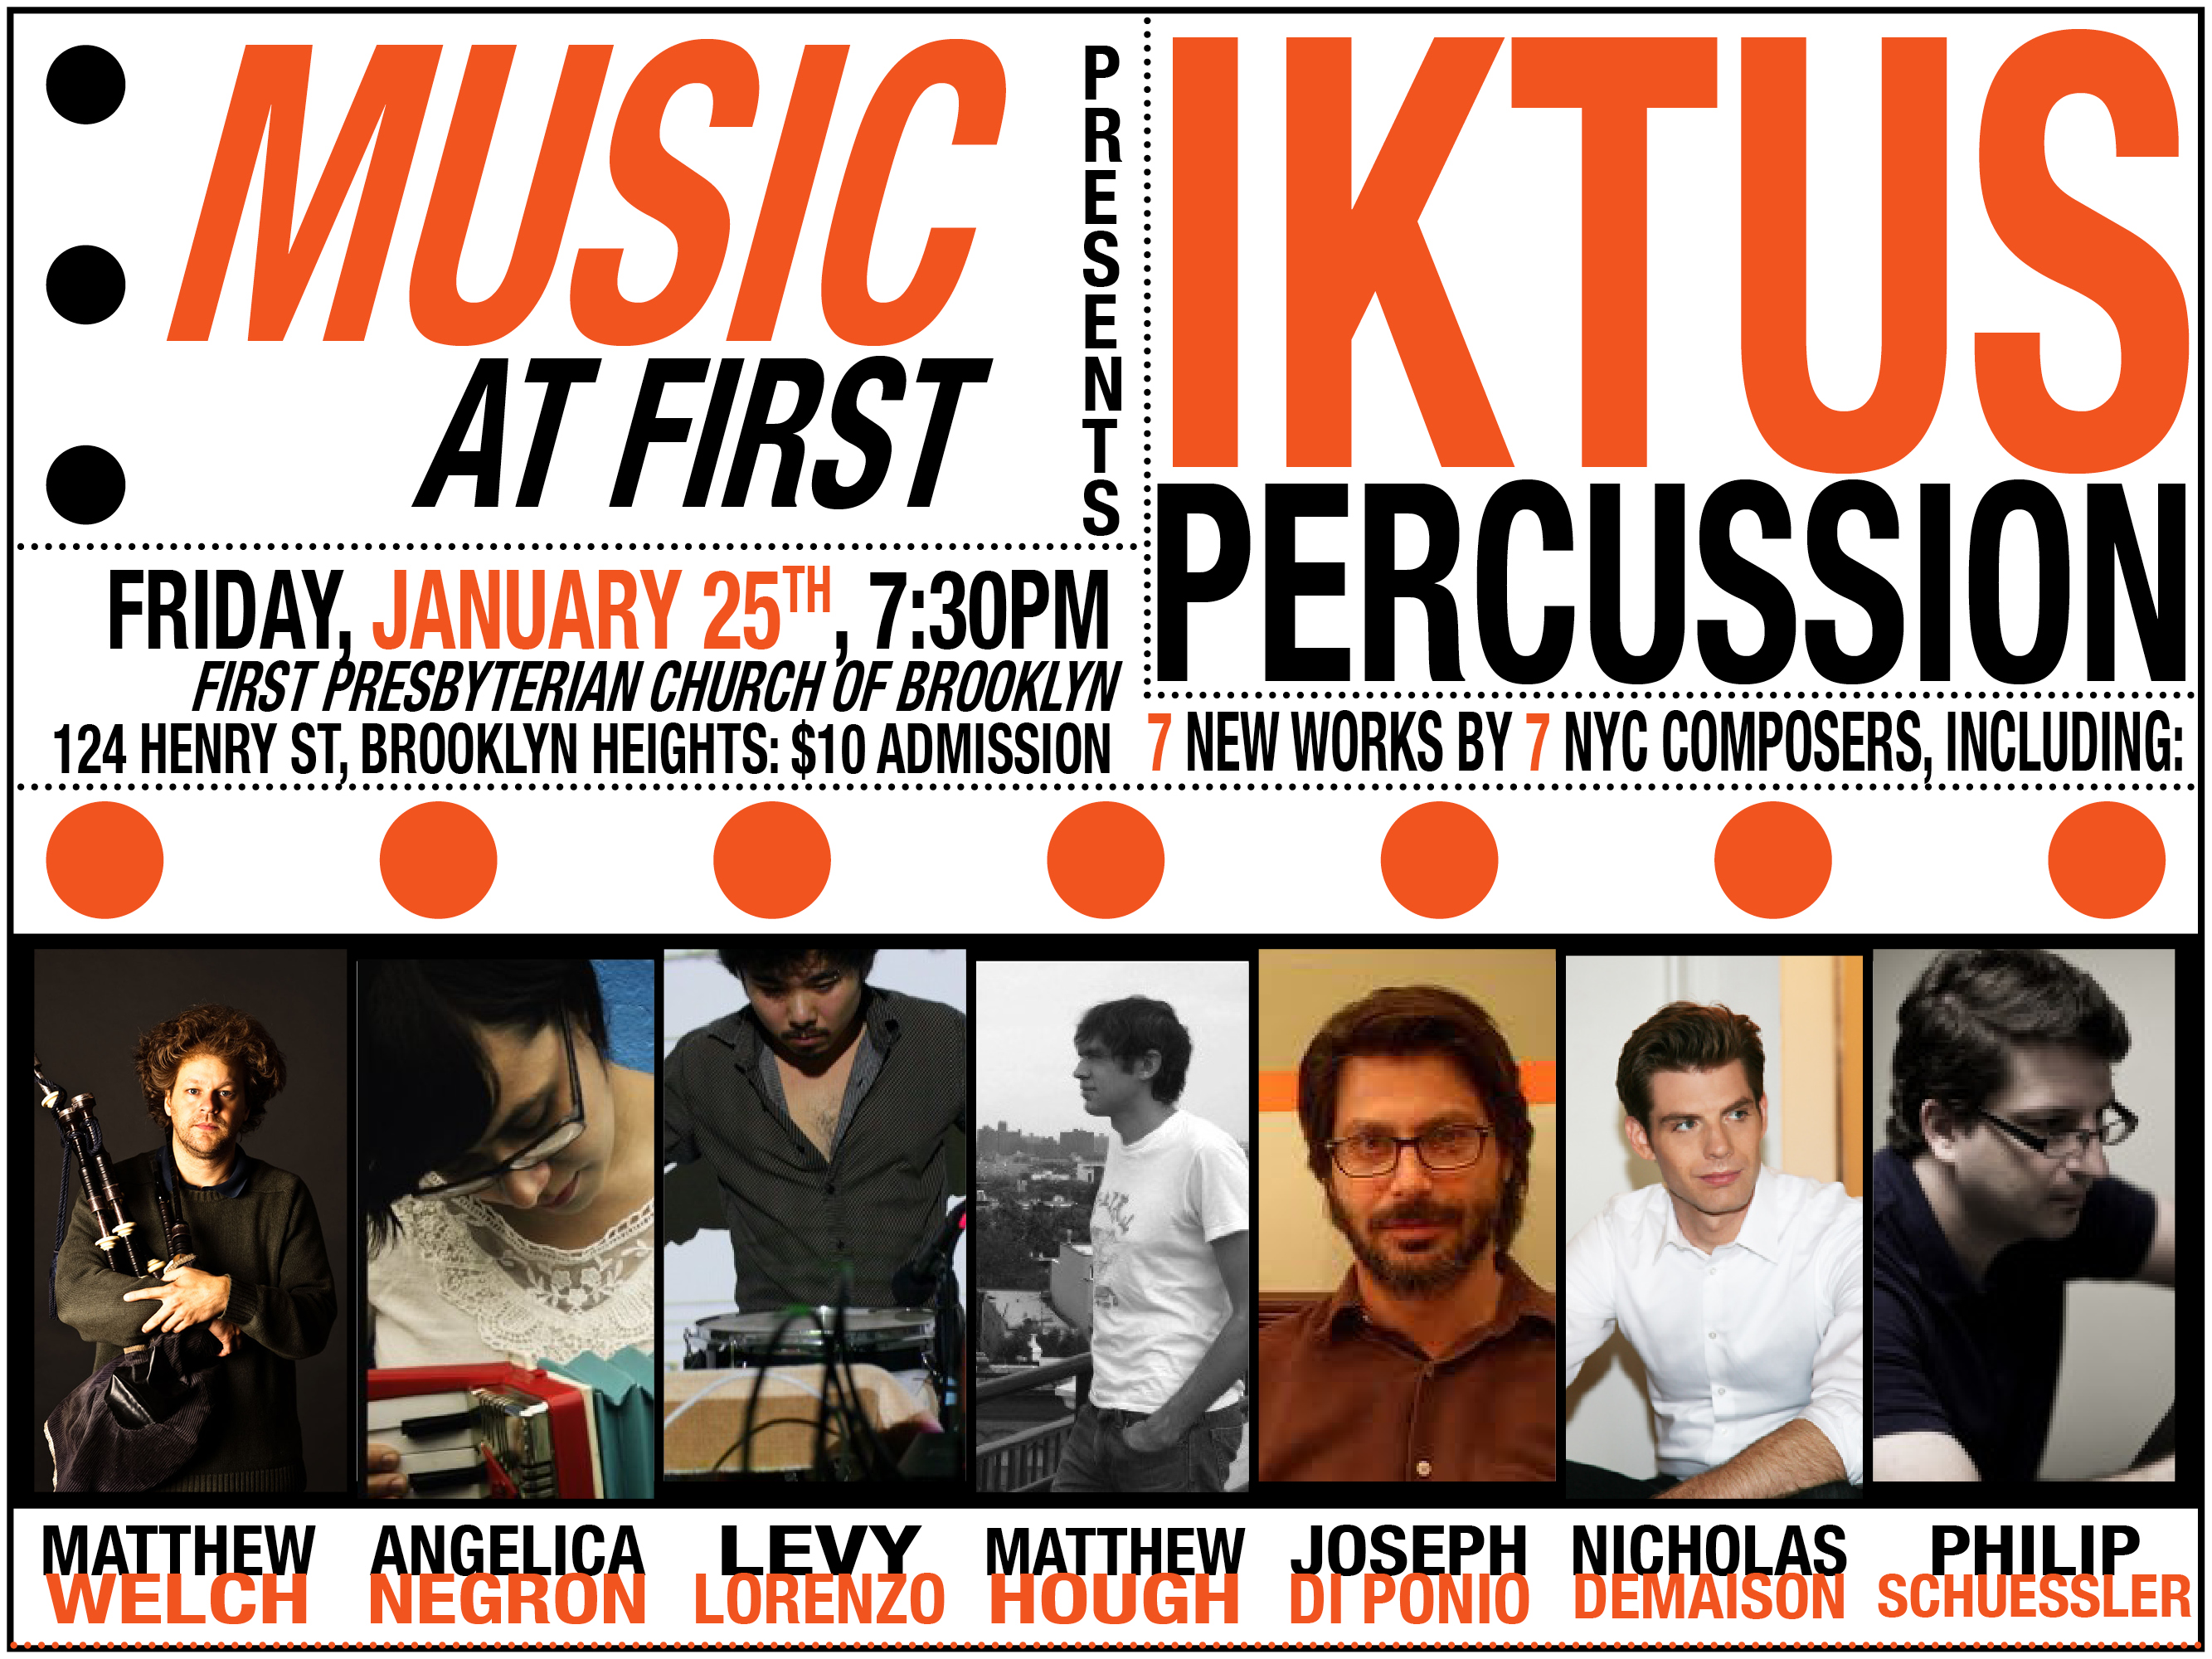 Iktus Percussion Music at First Jan 25